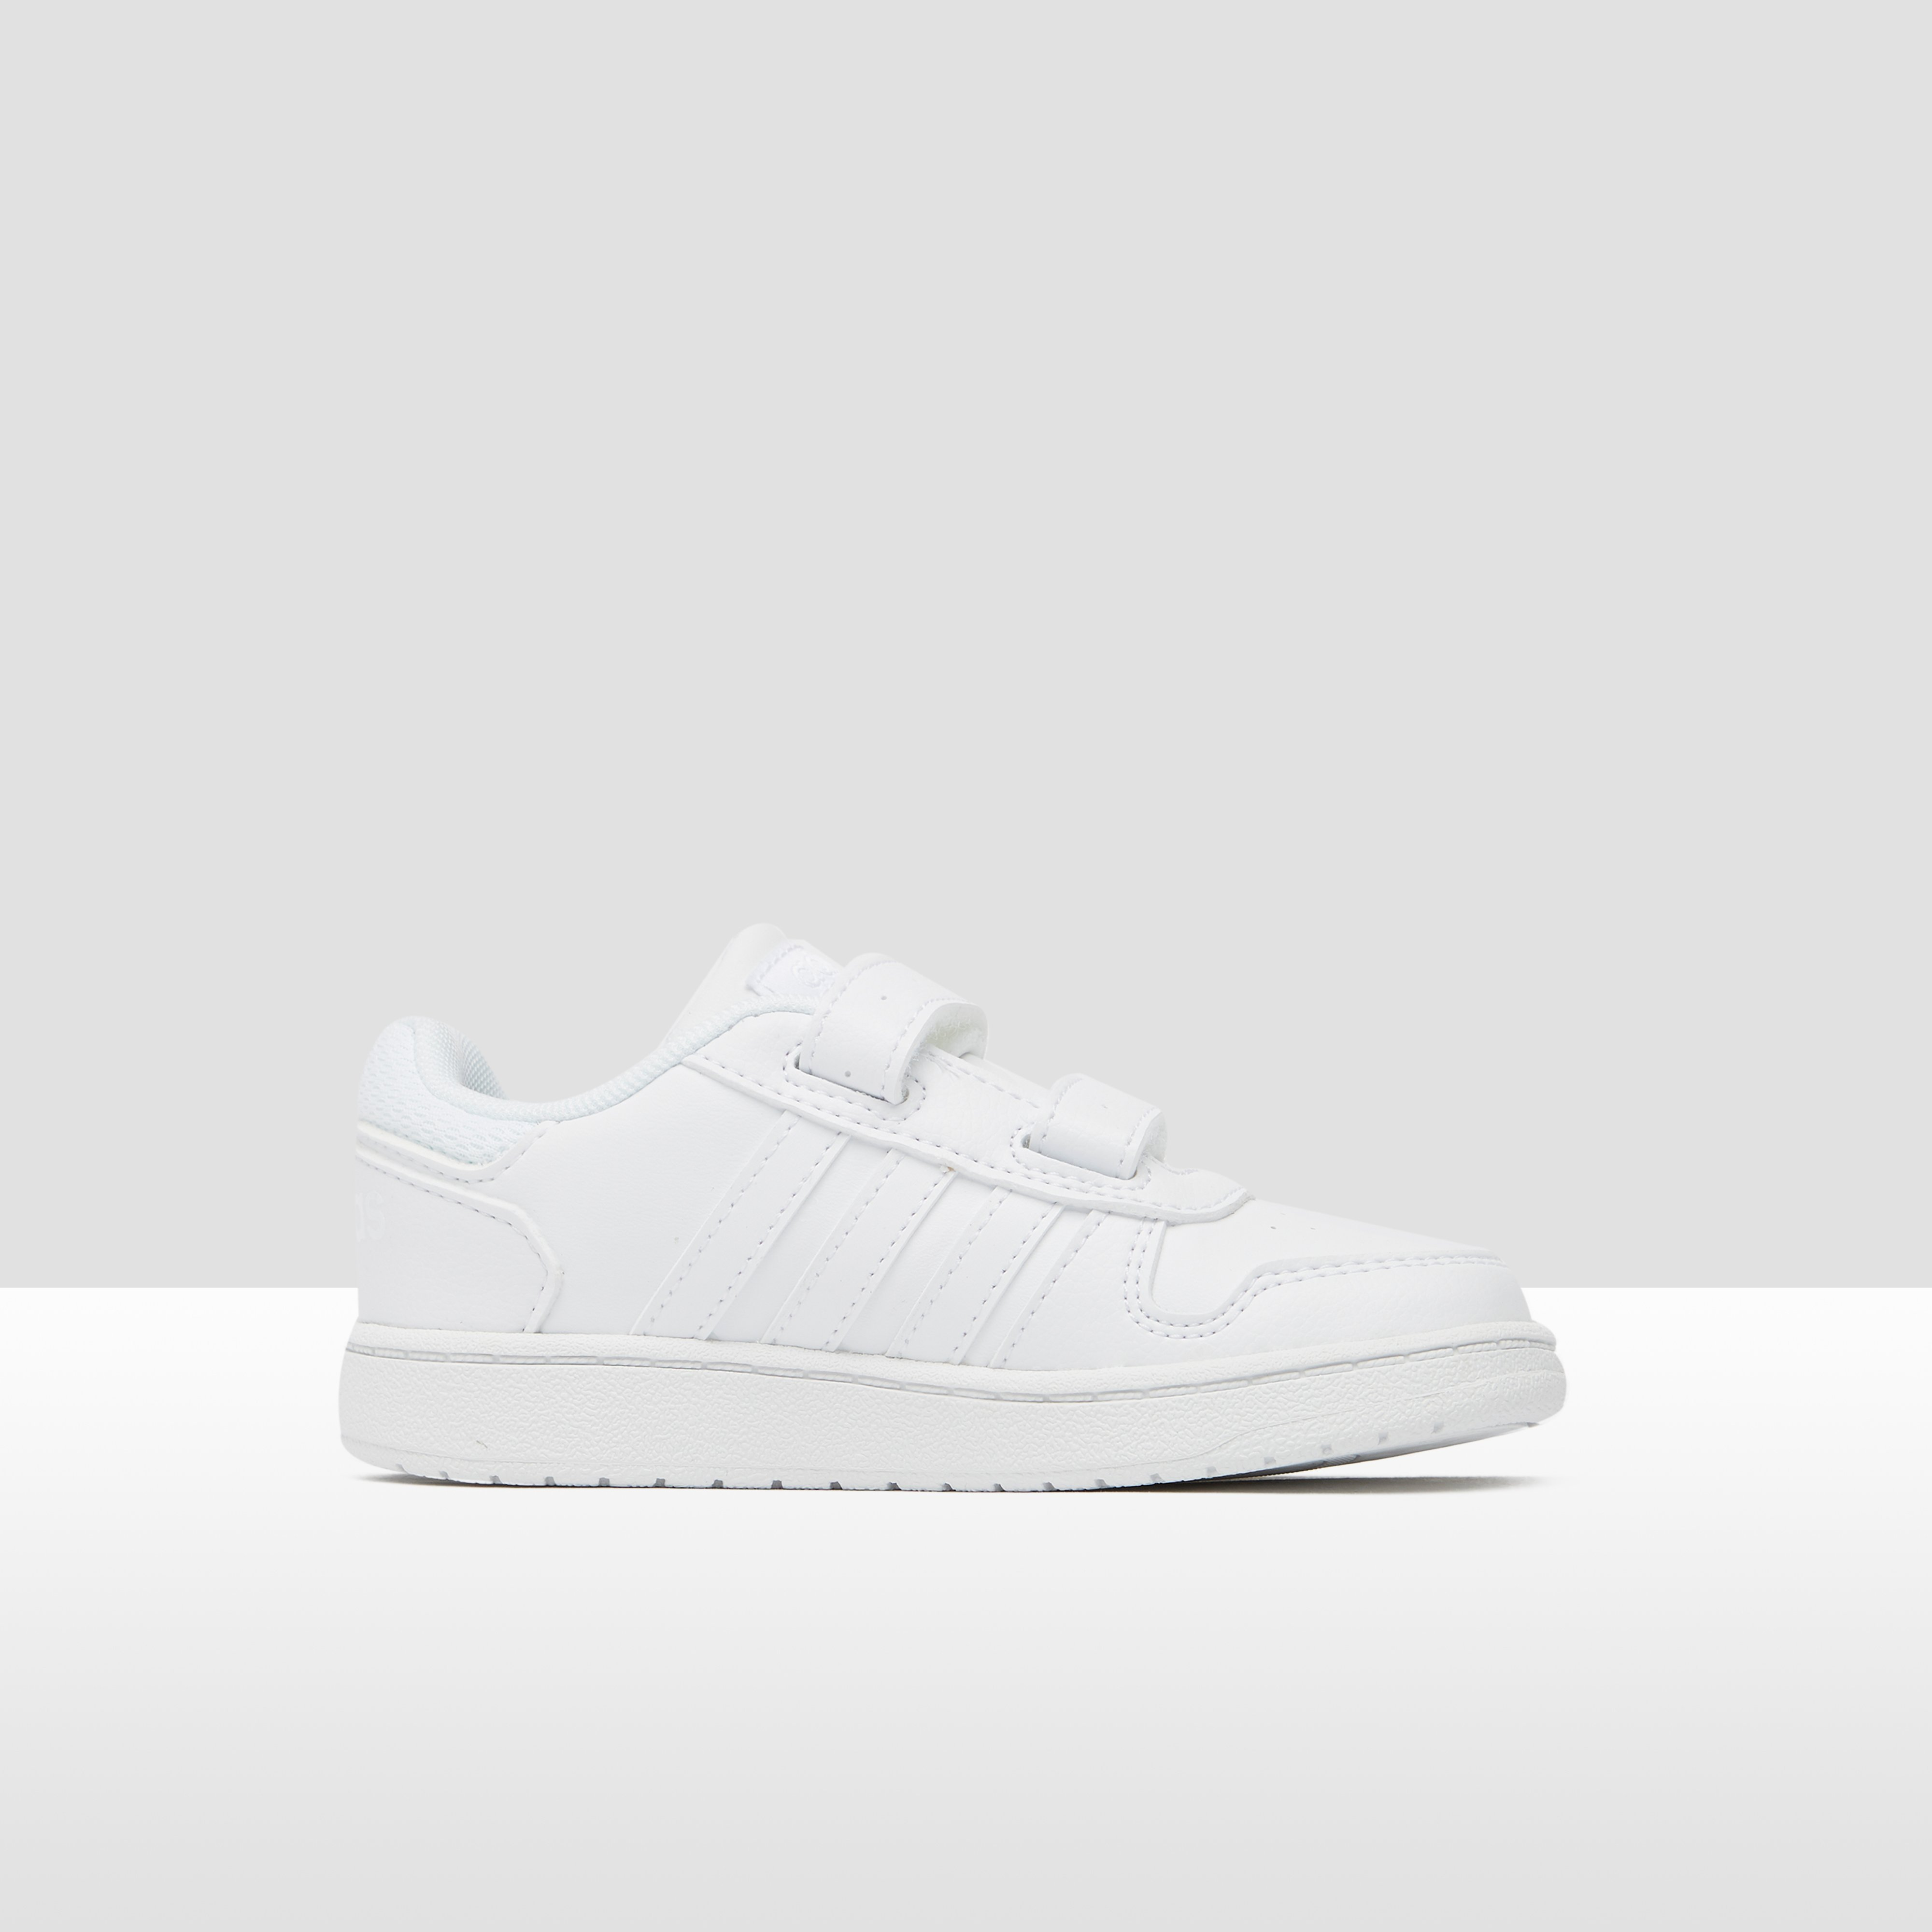 ADIDAS HOOPS 2.0 SNEAKERS WIT BABY